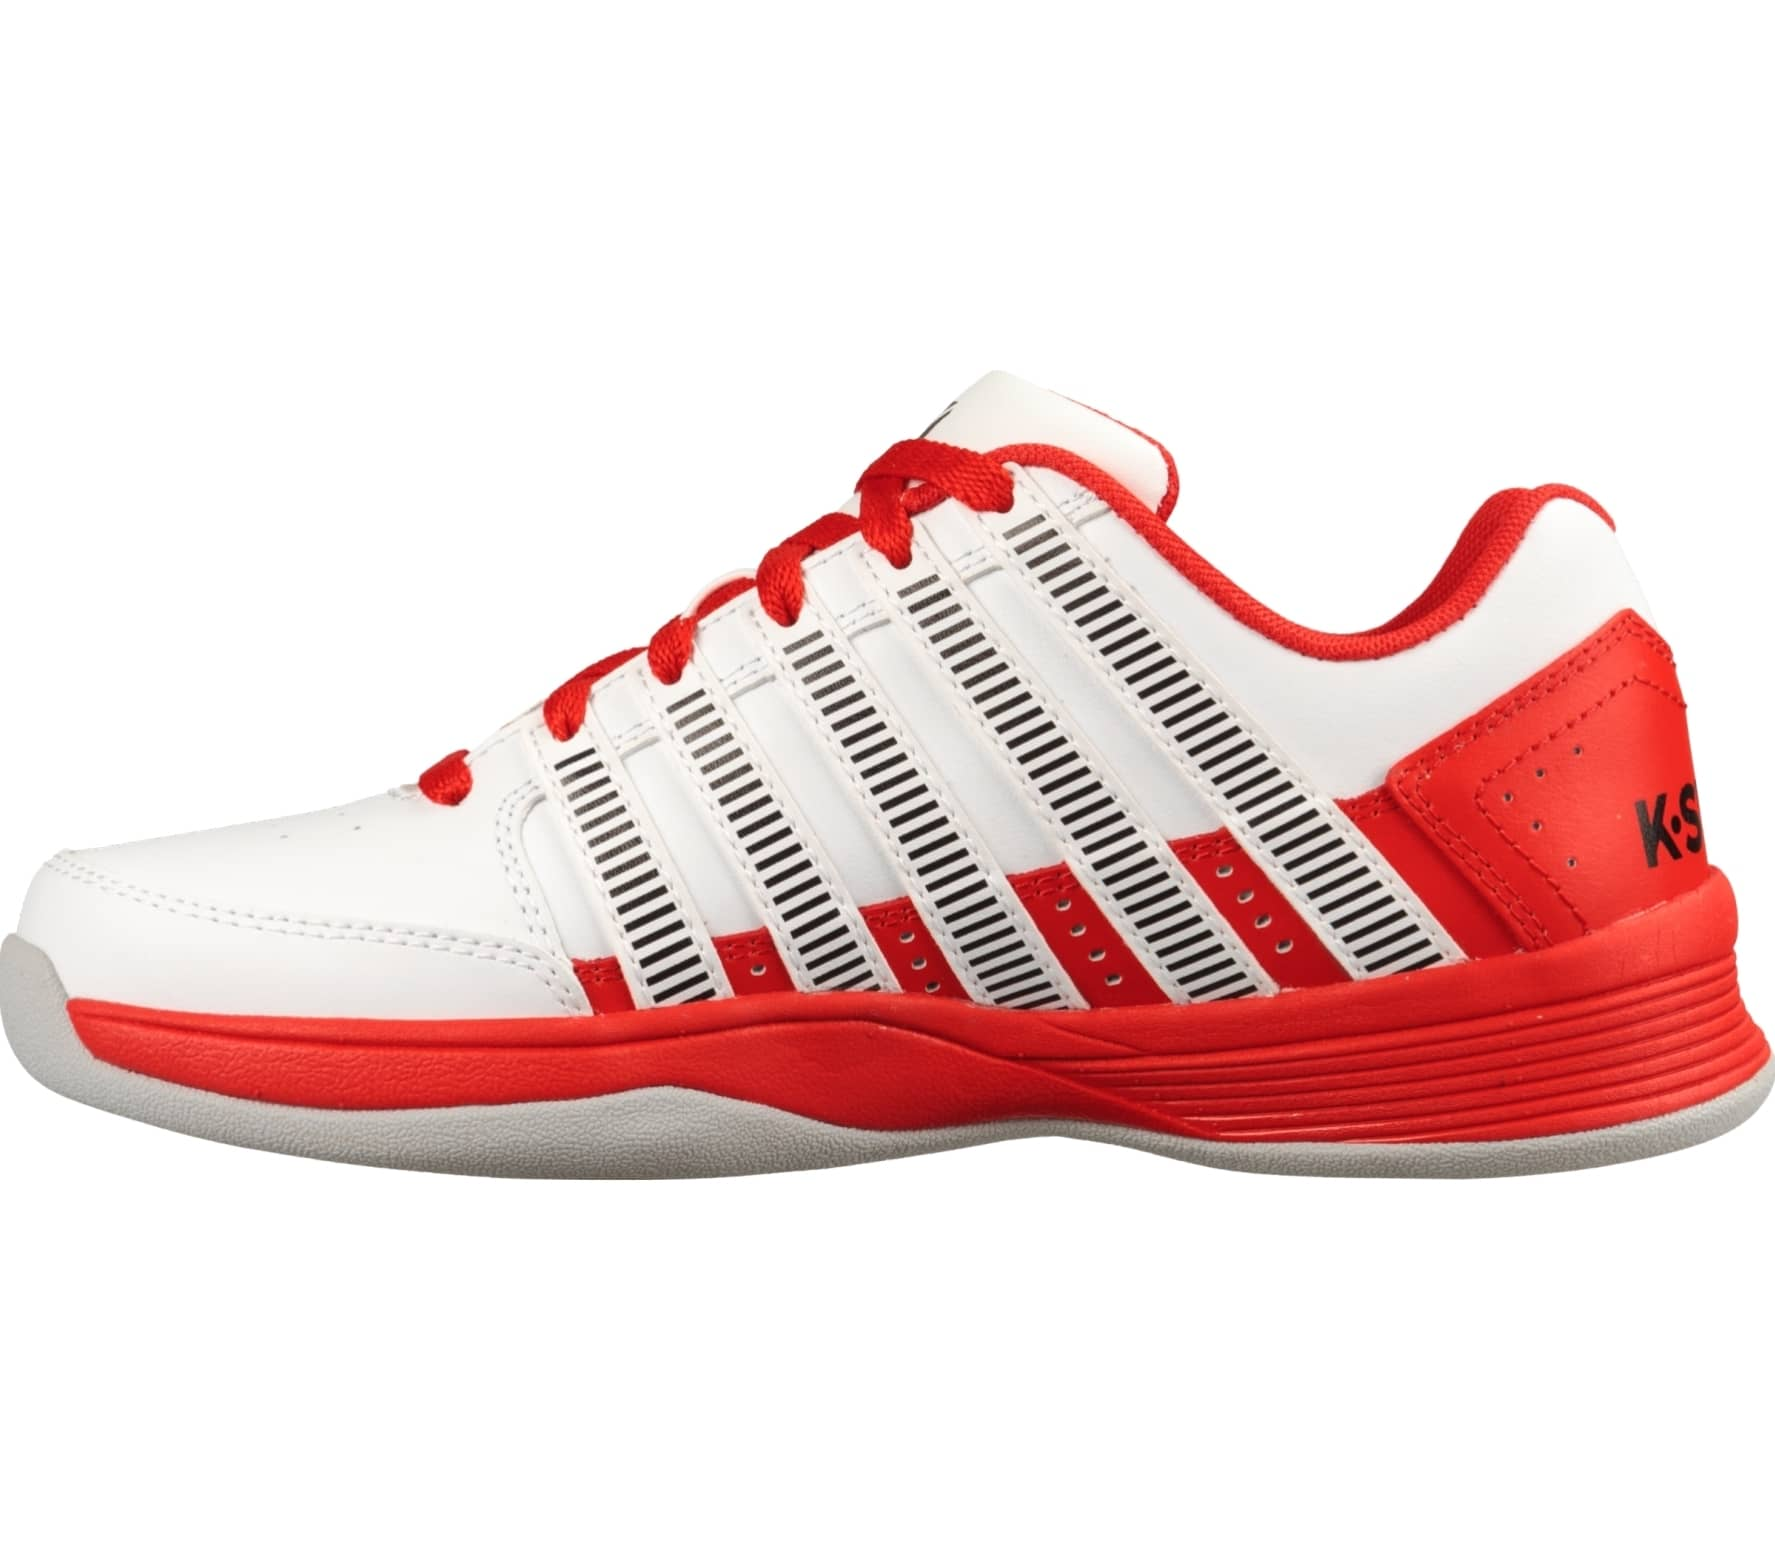 brand new c0a14 ba936 K-Swiss - Court Impact LTR Carpet Enfants Chaussure de tennis (rouge blanc